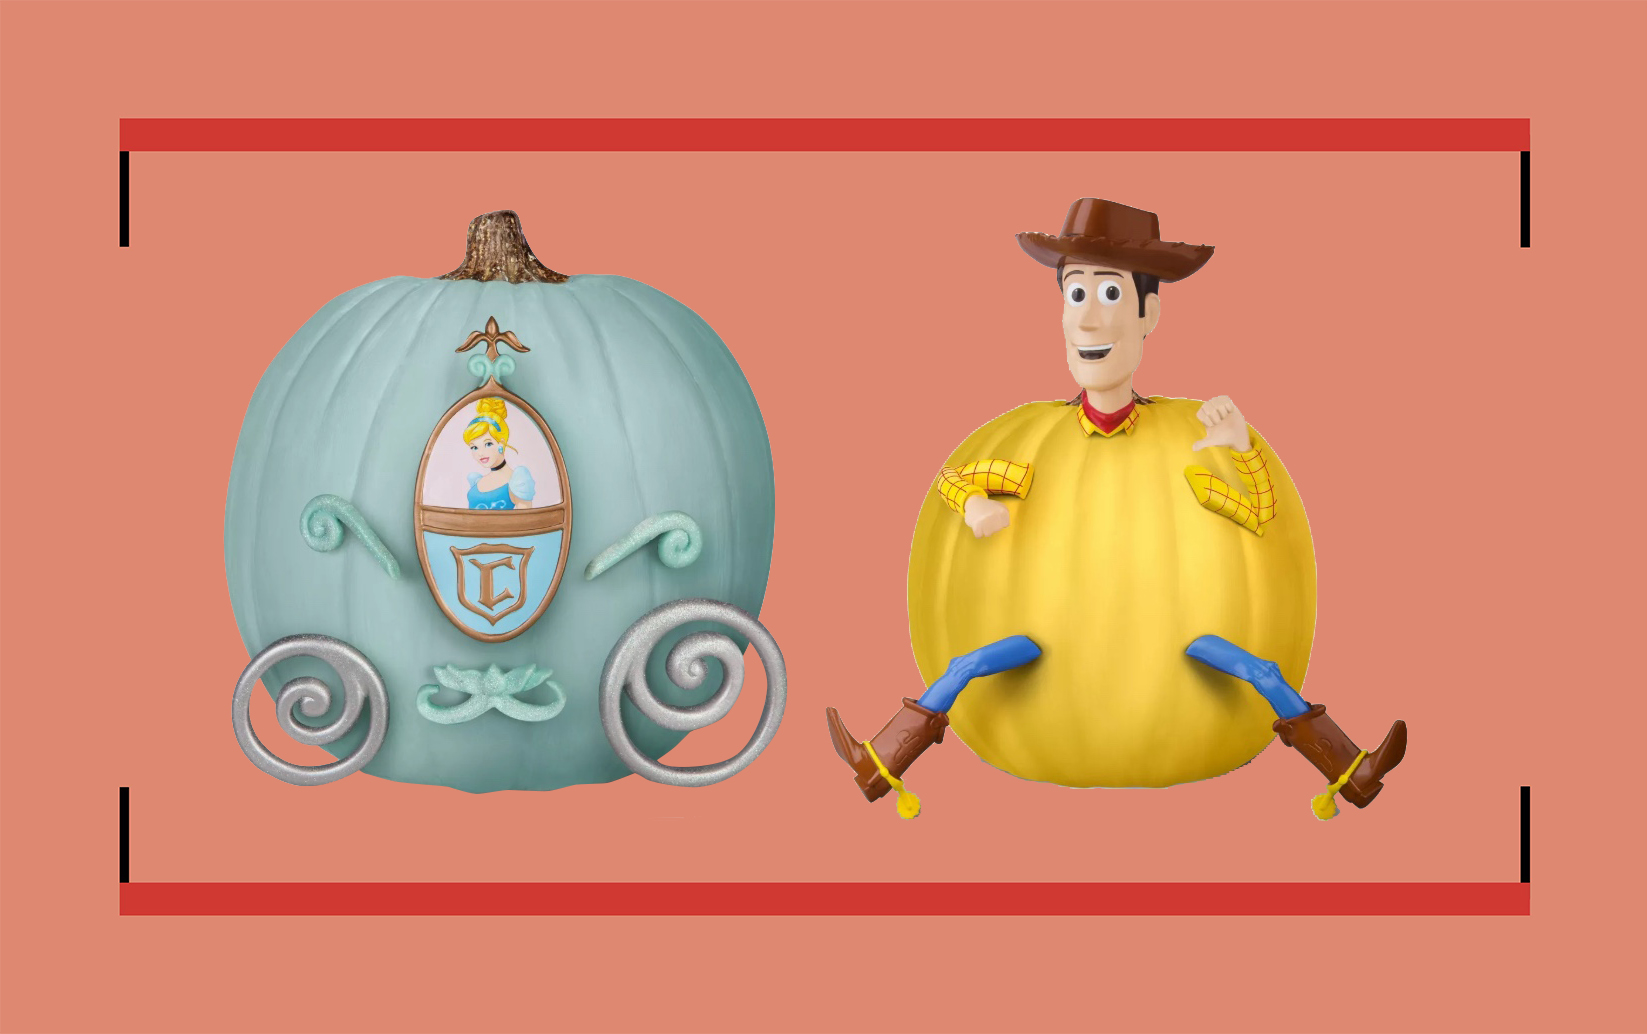 a blue pumpkin decorated like cinderella's pumpkin carriage and a yellow pumpkin decorated like woody from toy story